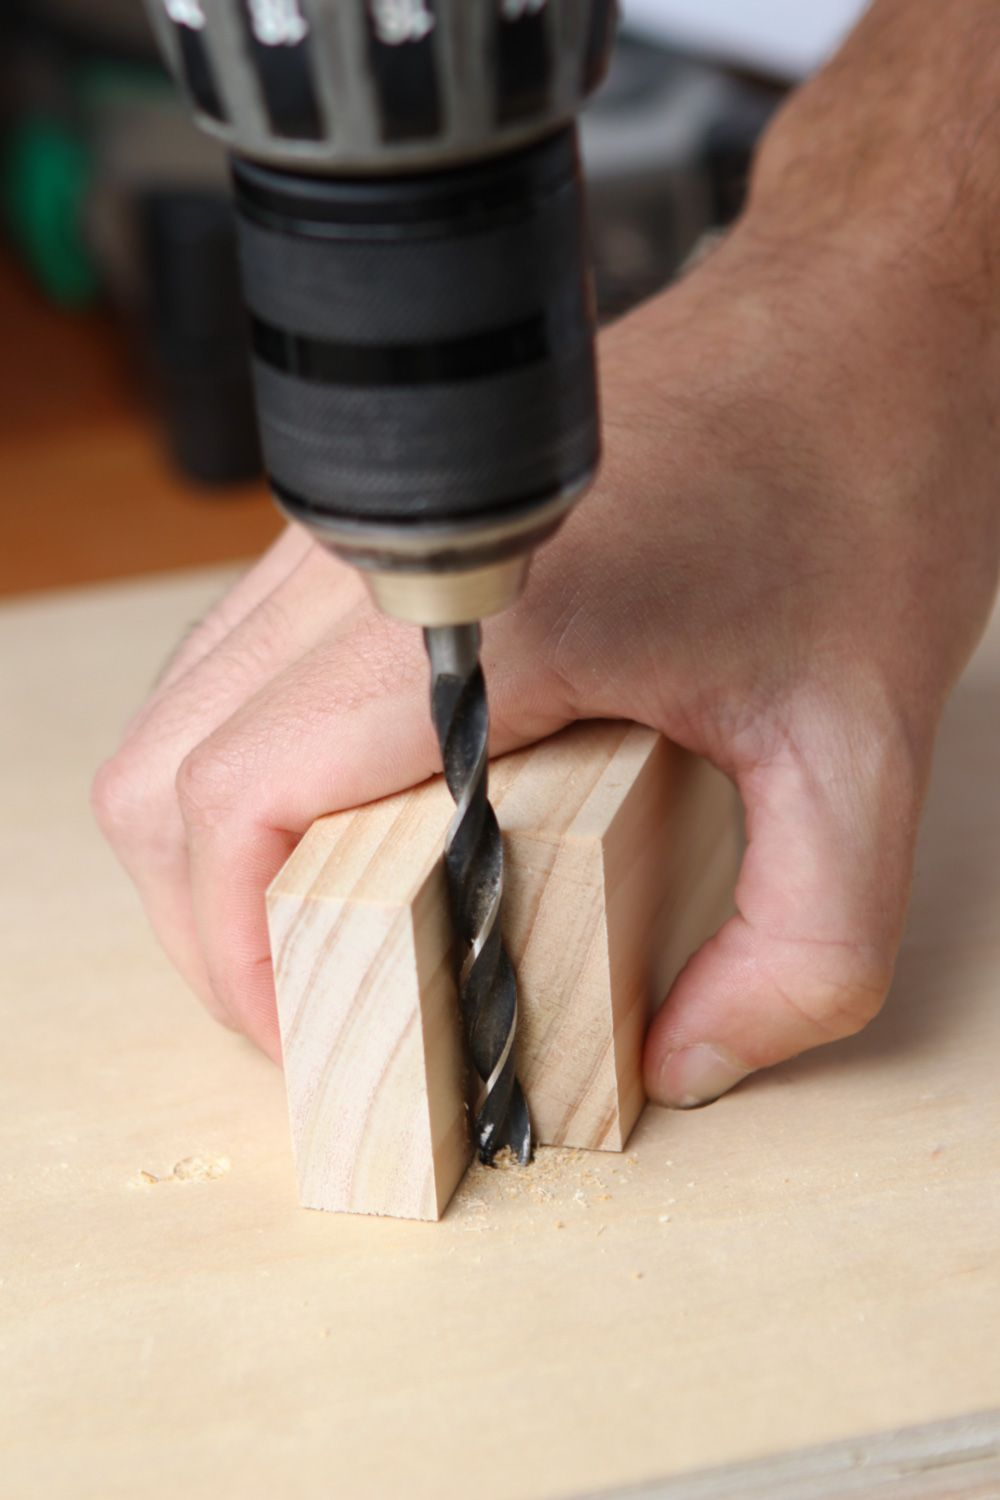 How To Drill Straight And Square Holes Without A Drill Press Woodworking Jig Plans Woodworking Ideas To Sell Drill Press